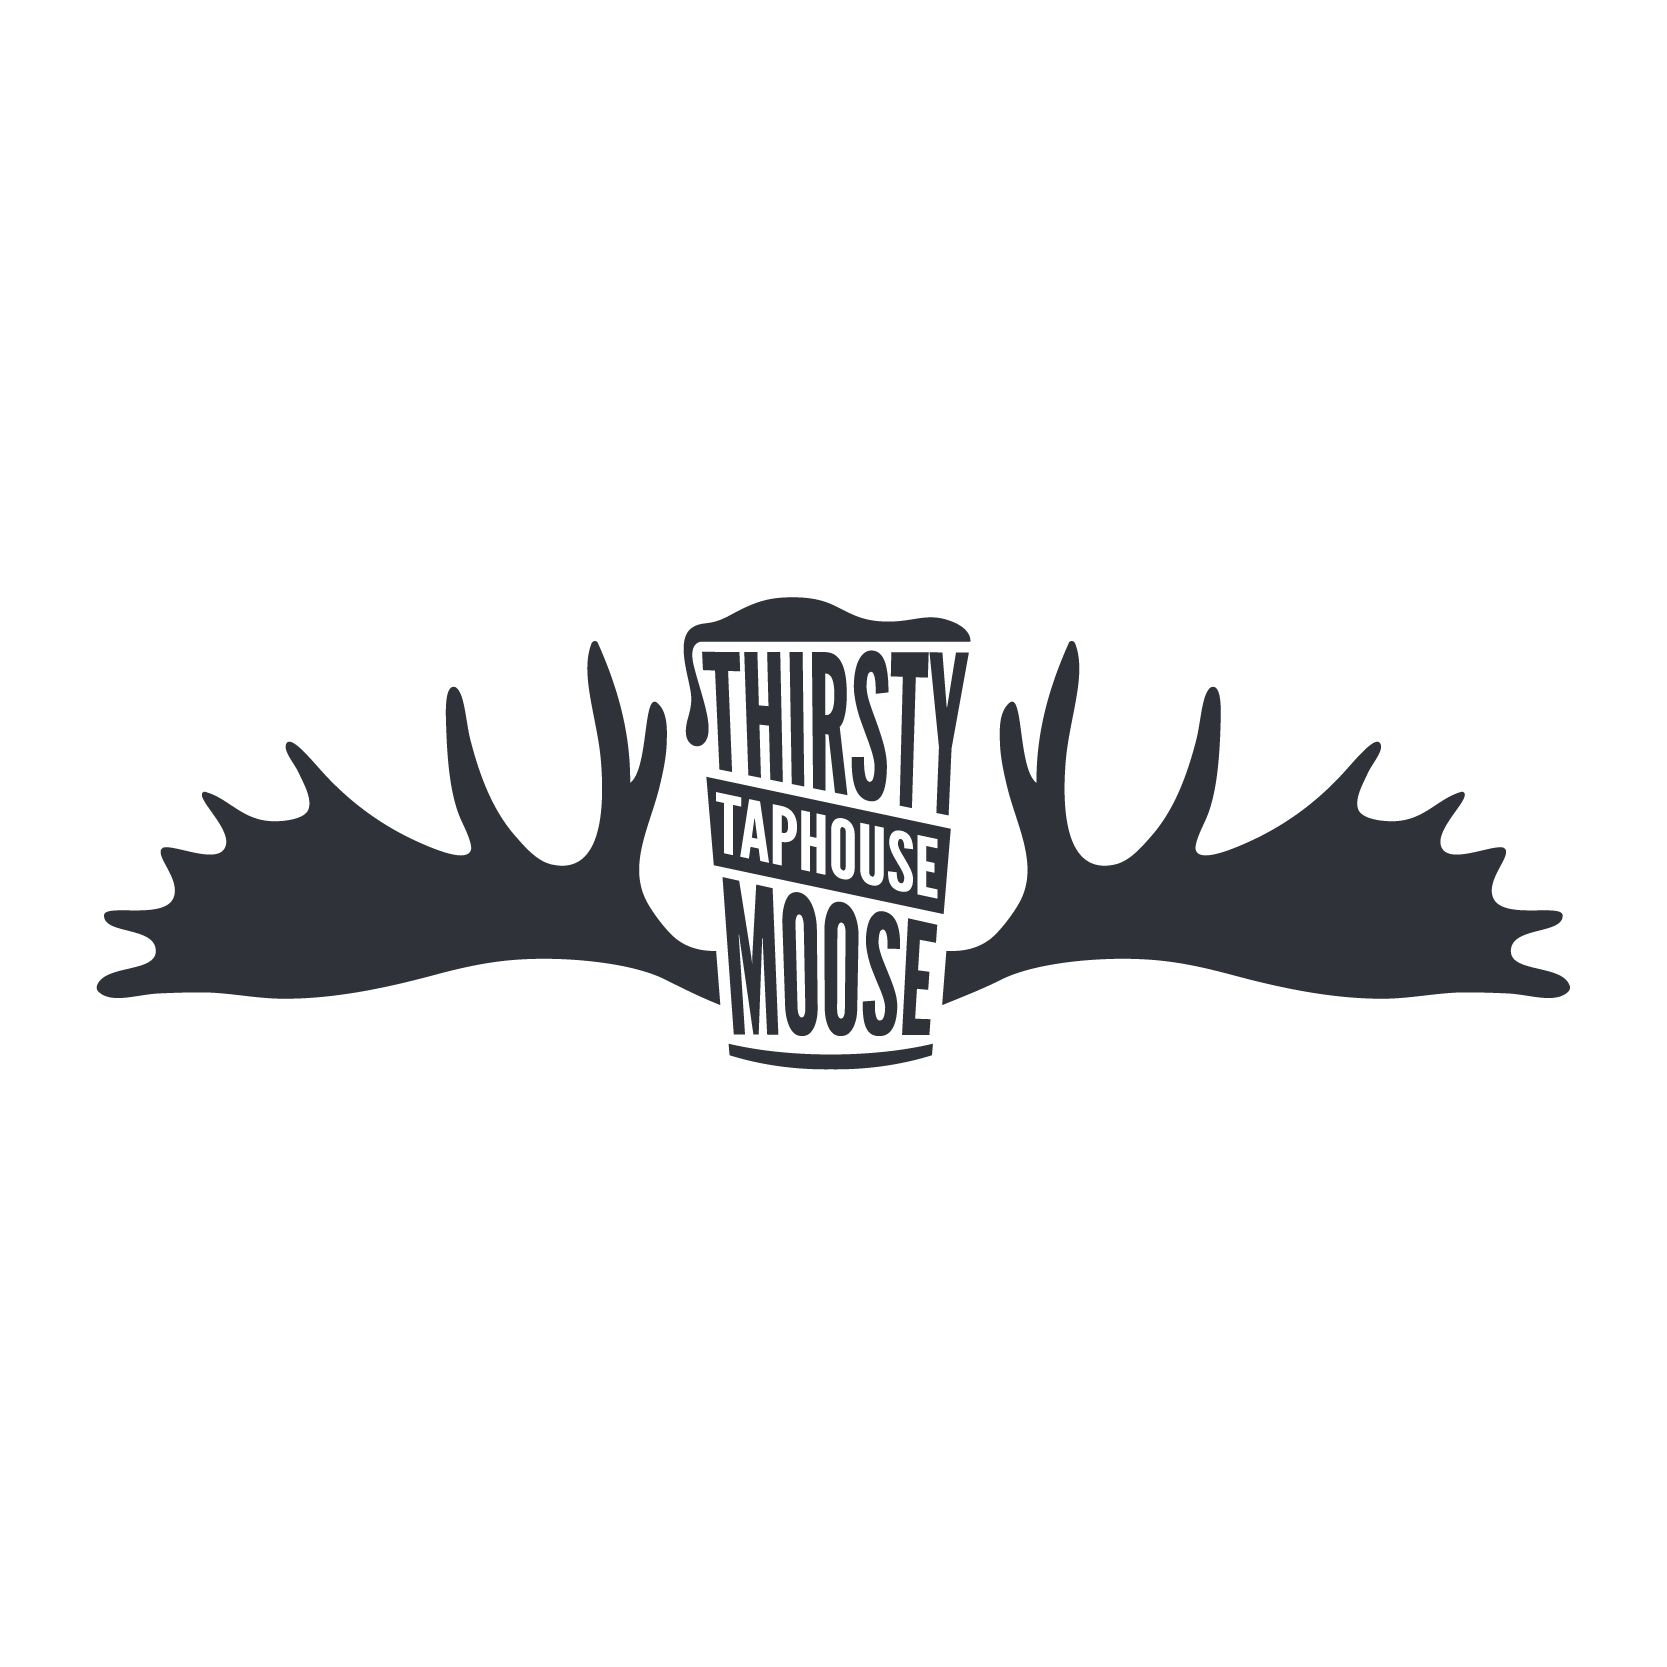 _all_logos_img-thirtsy-moose-logo.png